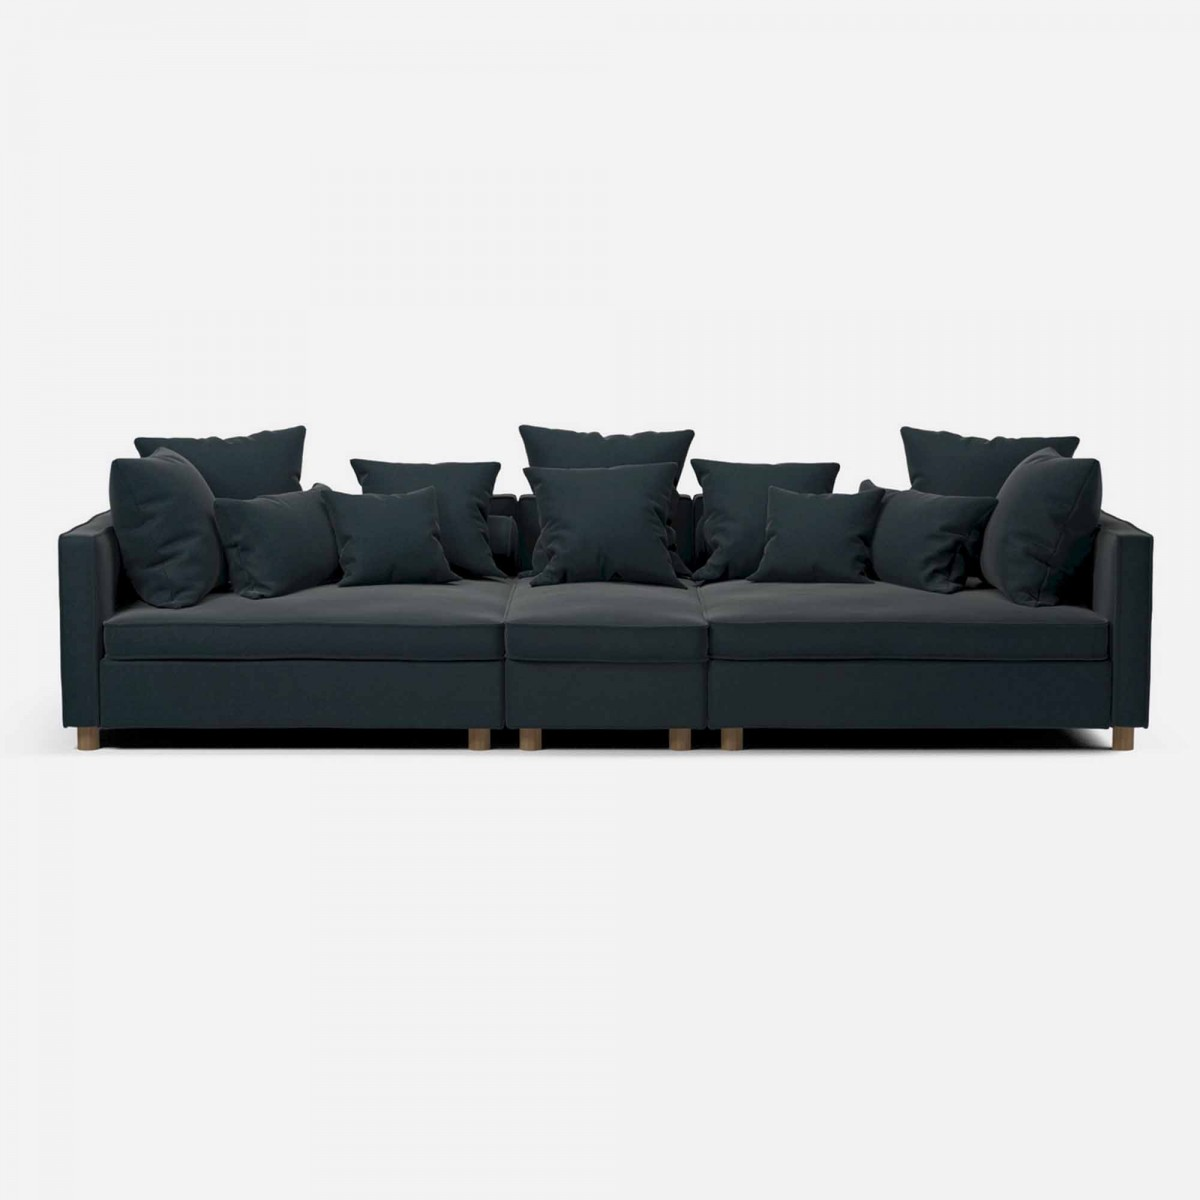 mr big sofa 3 units s bolia. Black Bedroom Furniture Sets. Home Design Ideas